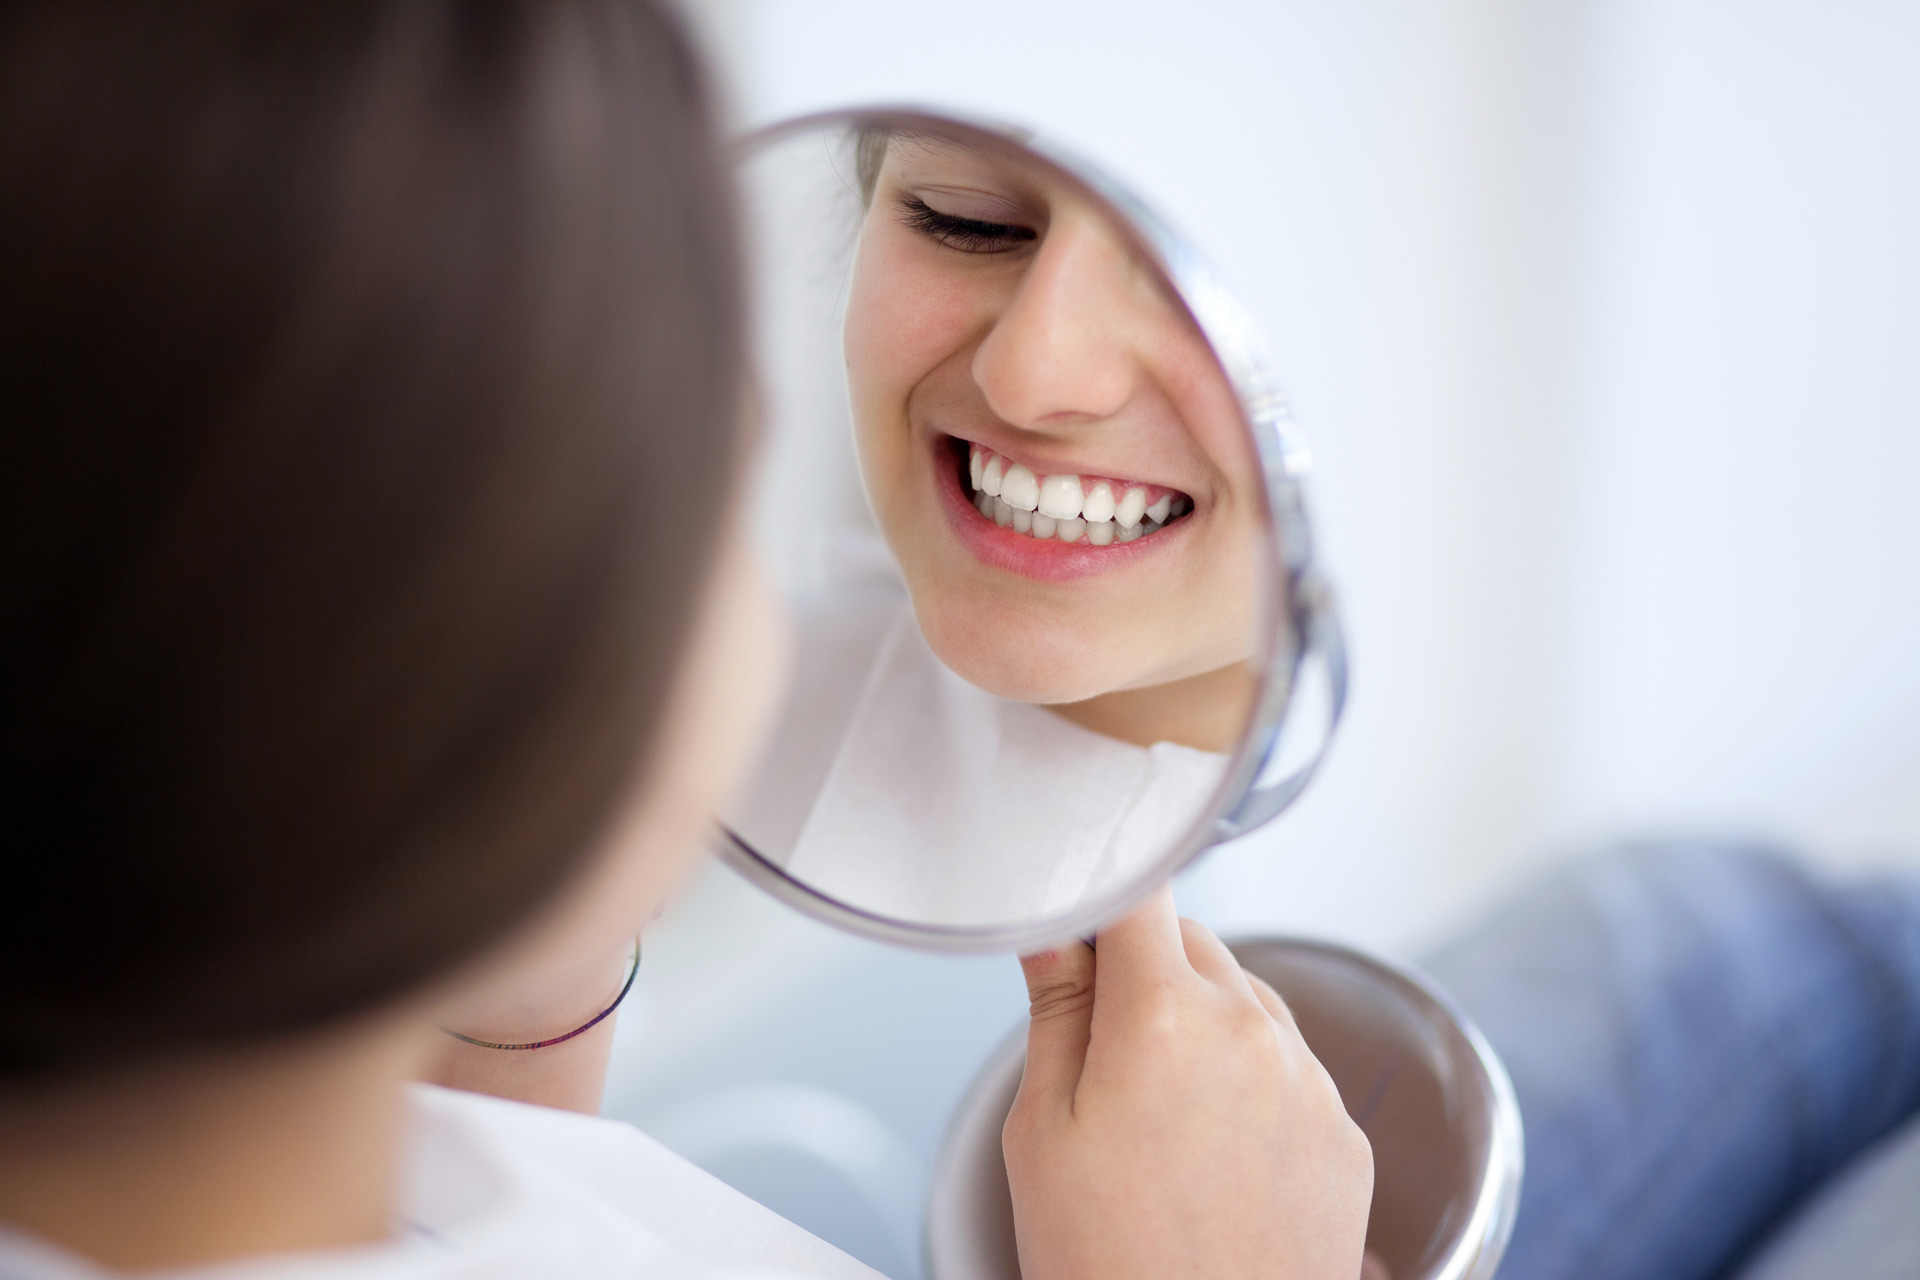 5 Things teeth cleanings can do for you